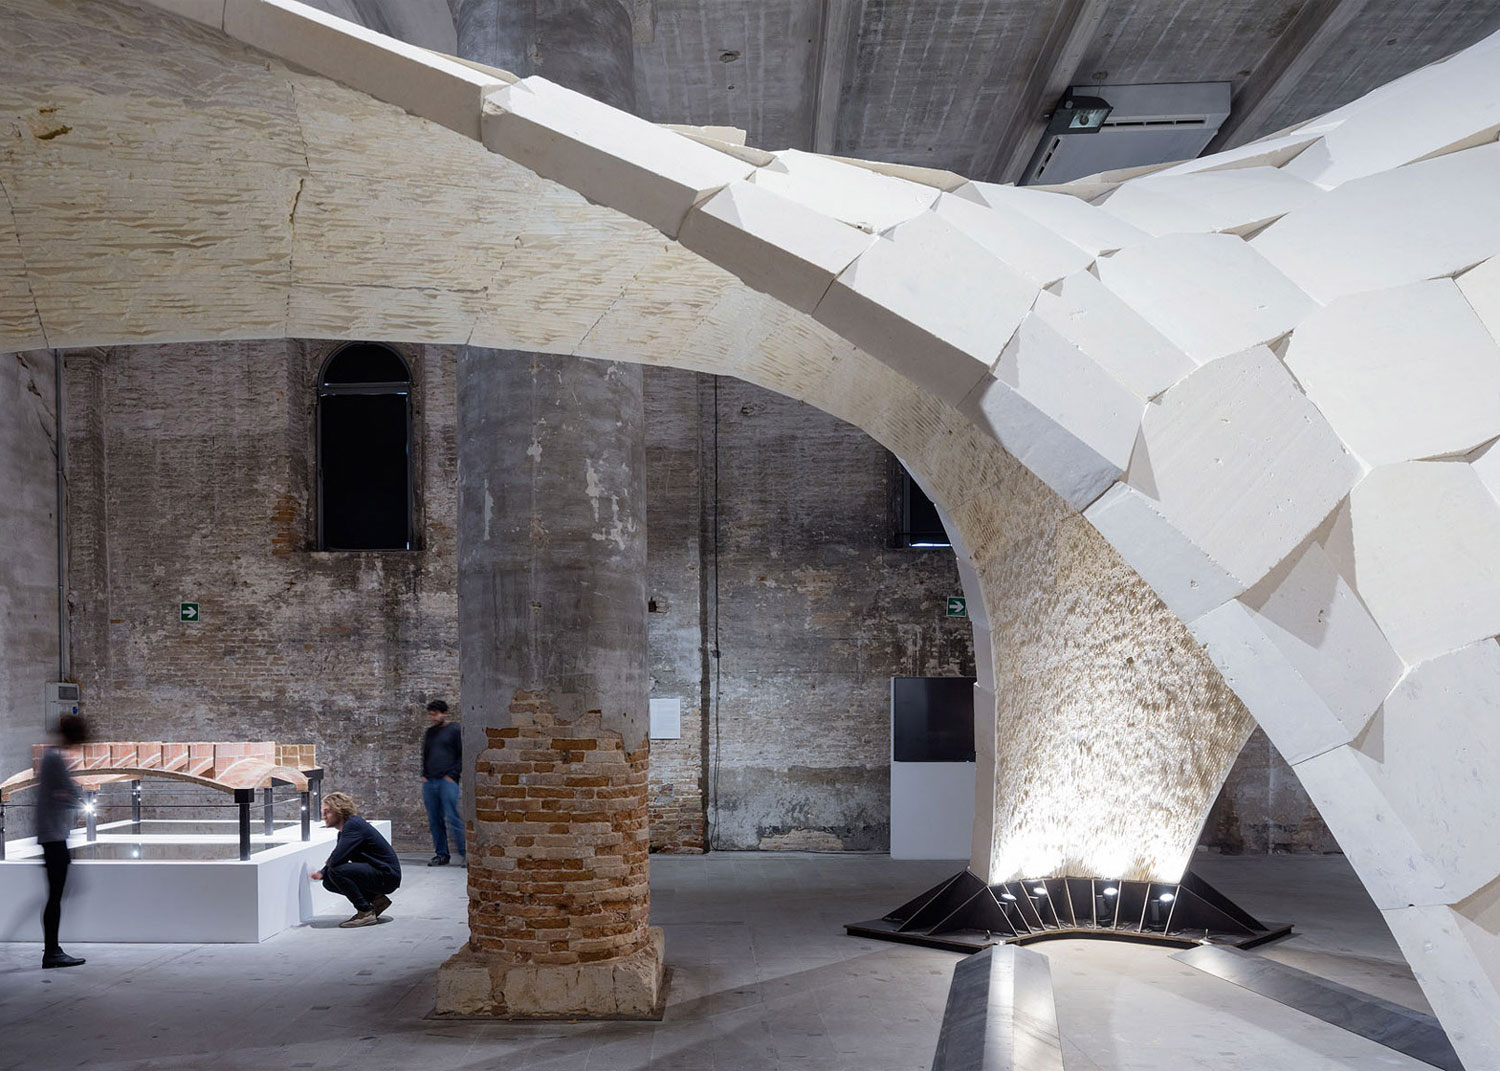 Armadillo Vault Beyond Bending Block Research Group Eth Zurich, Venice Architecture Biennale 2016. Photo by Iwan Baan   Yellowtrace